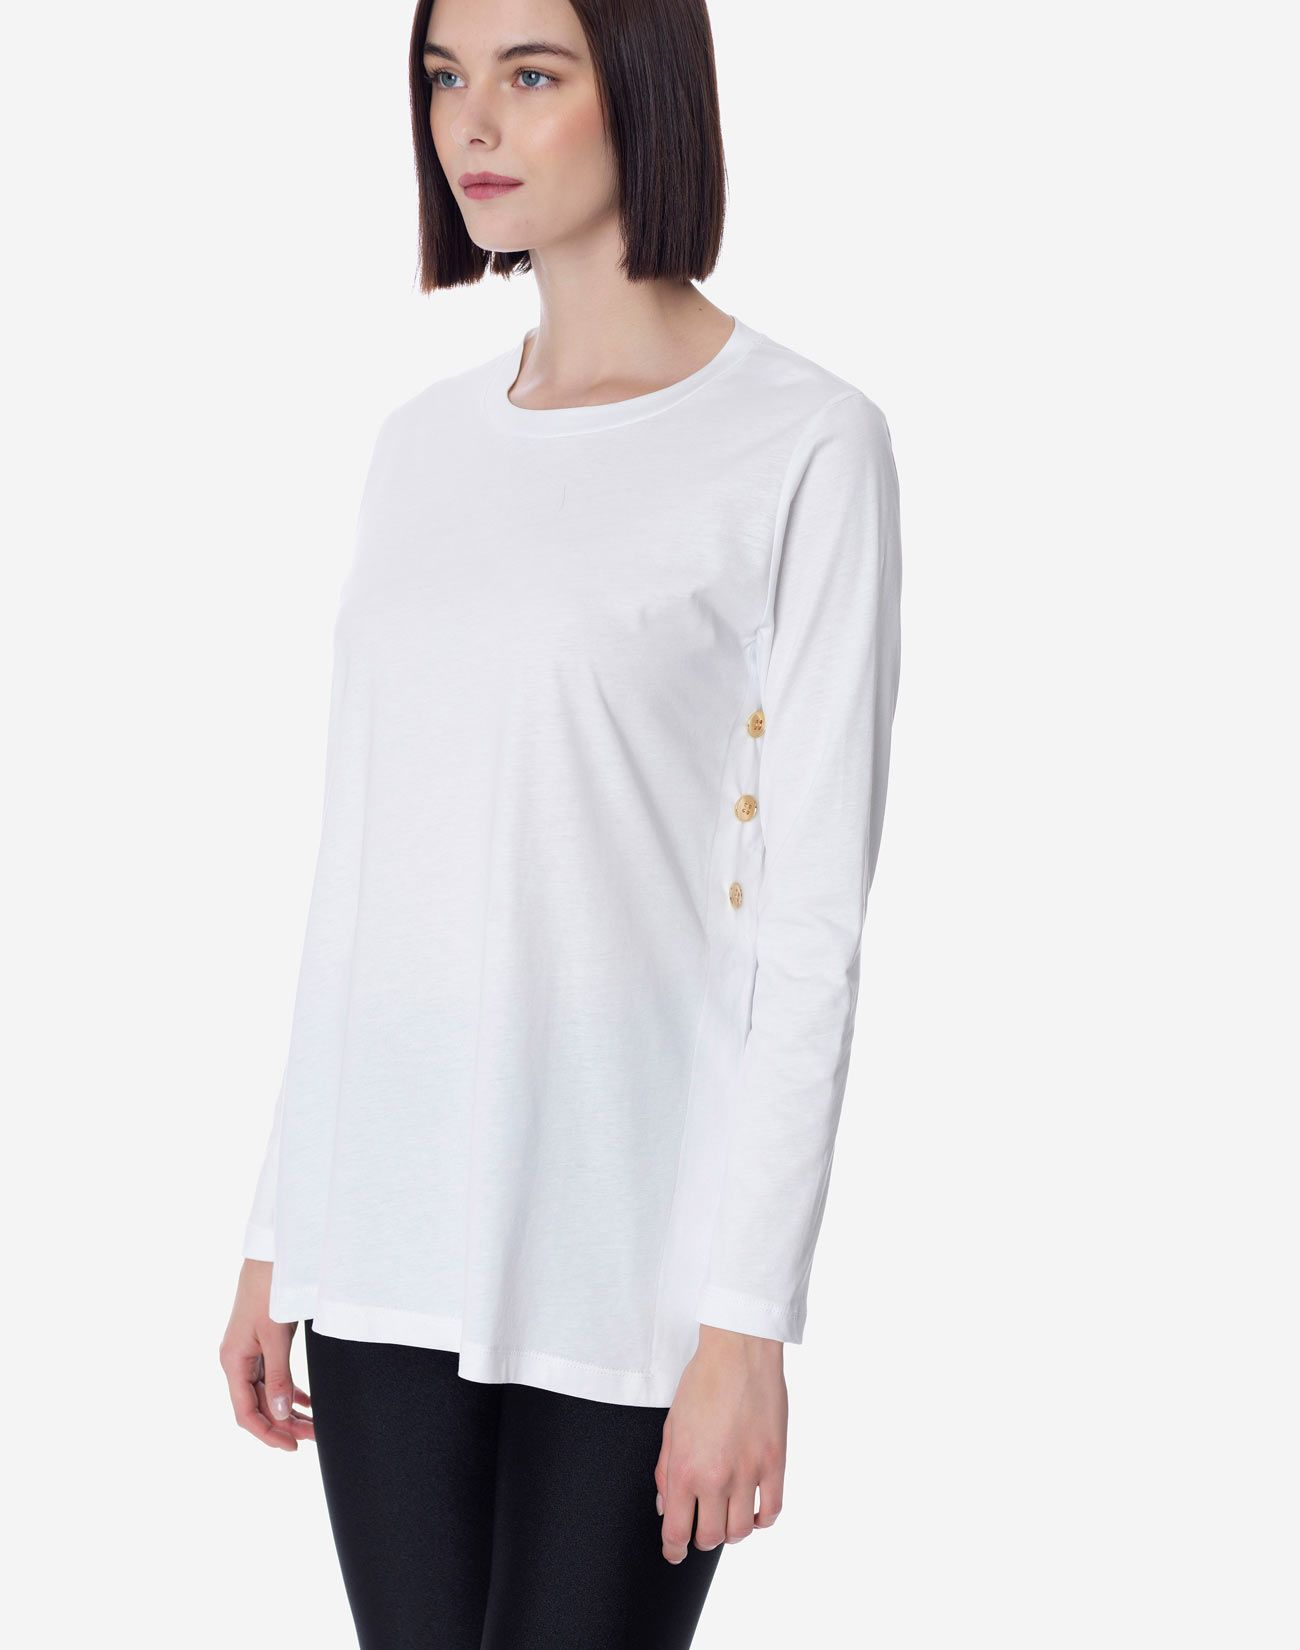 Organic cotton top with buttons